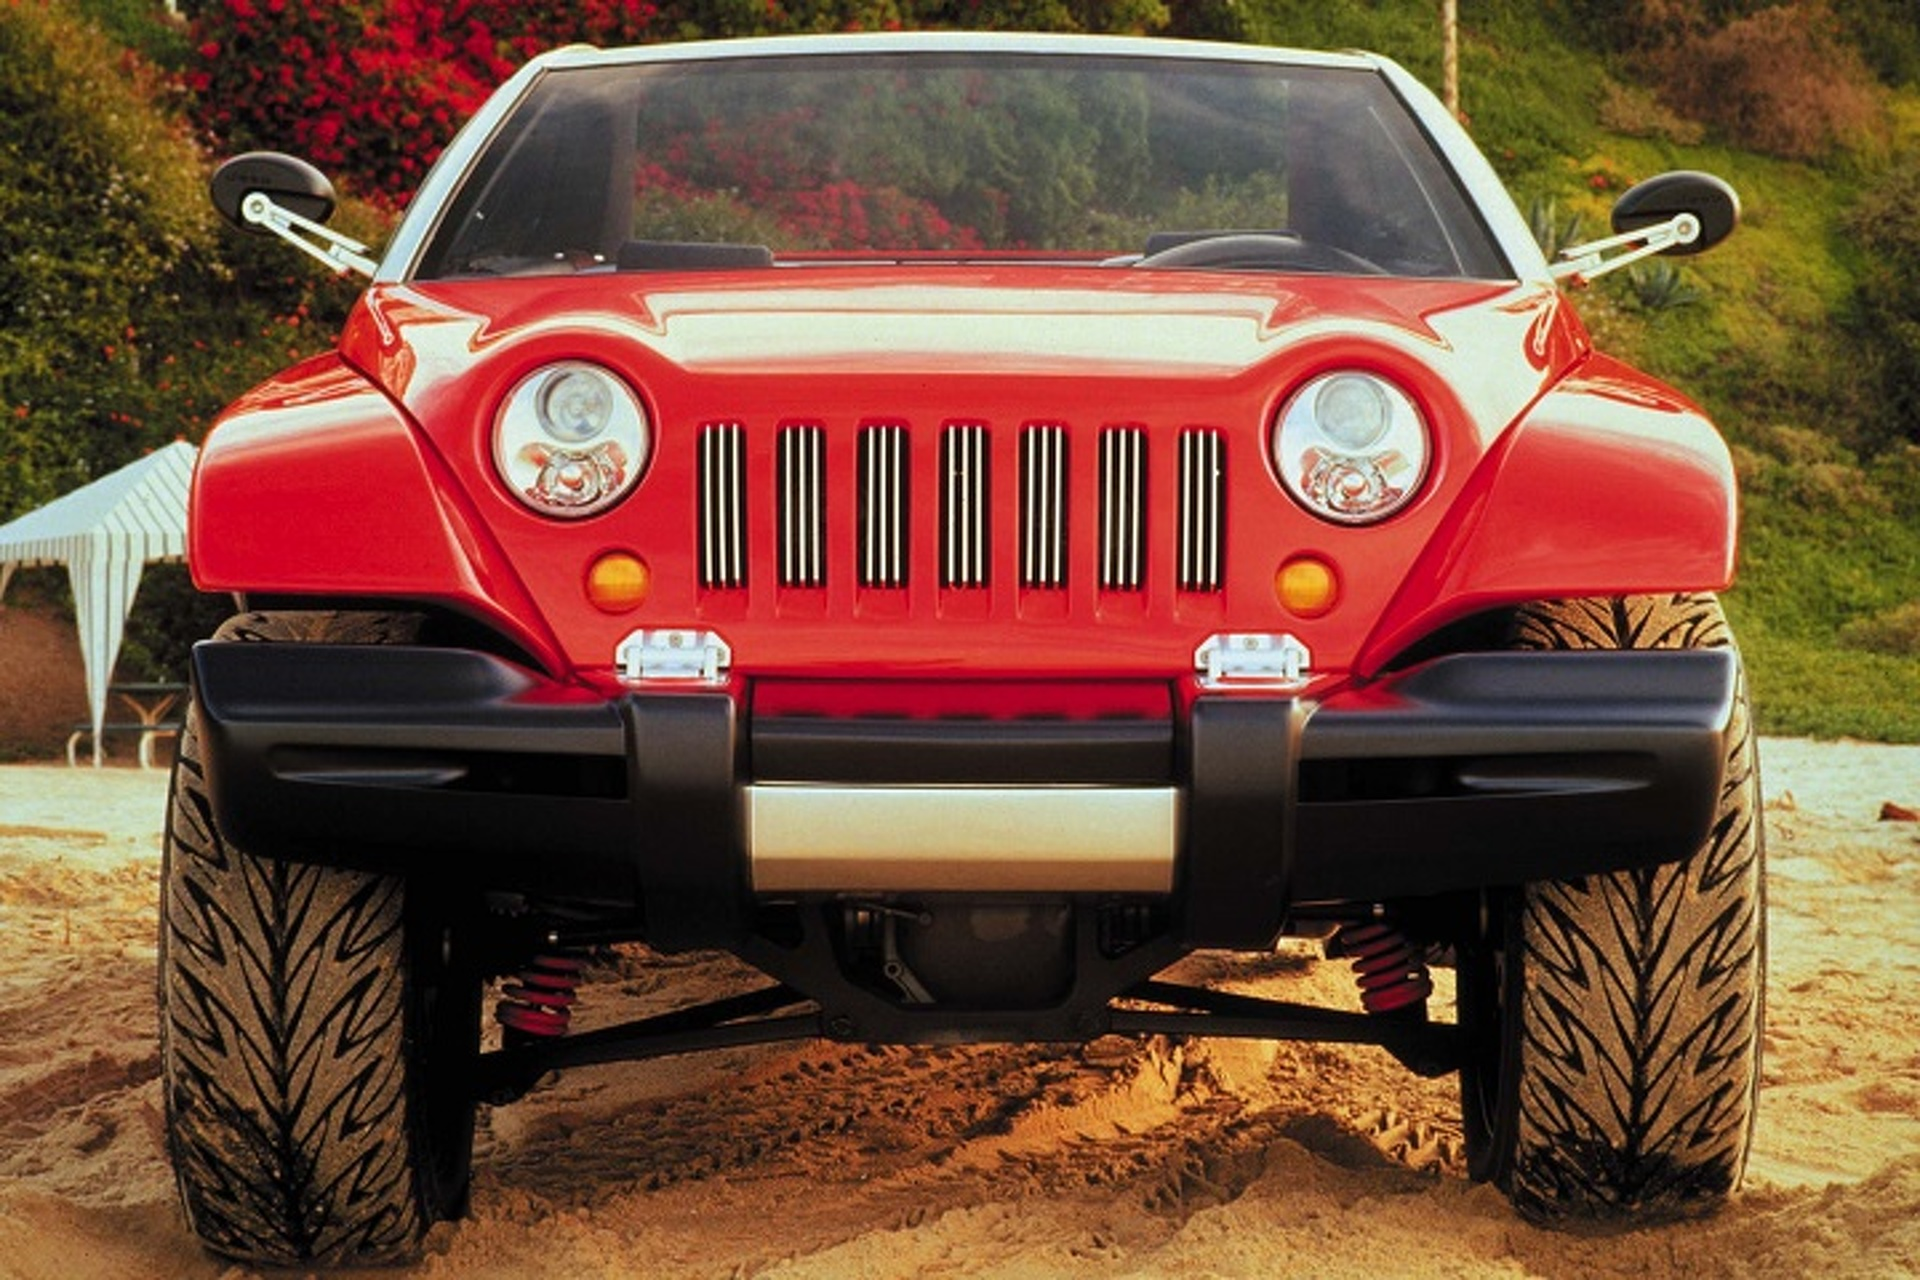 The Rugged and Unique 1998 Jeep Jeepster Concept